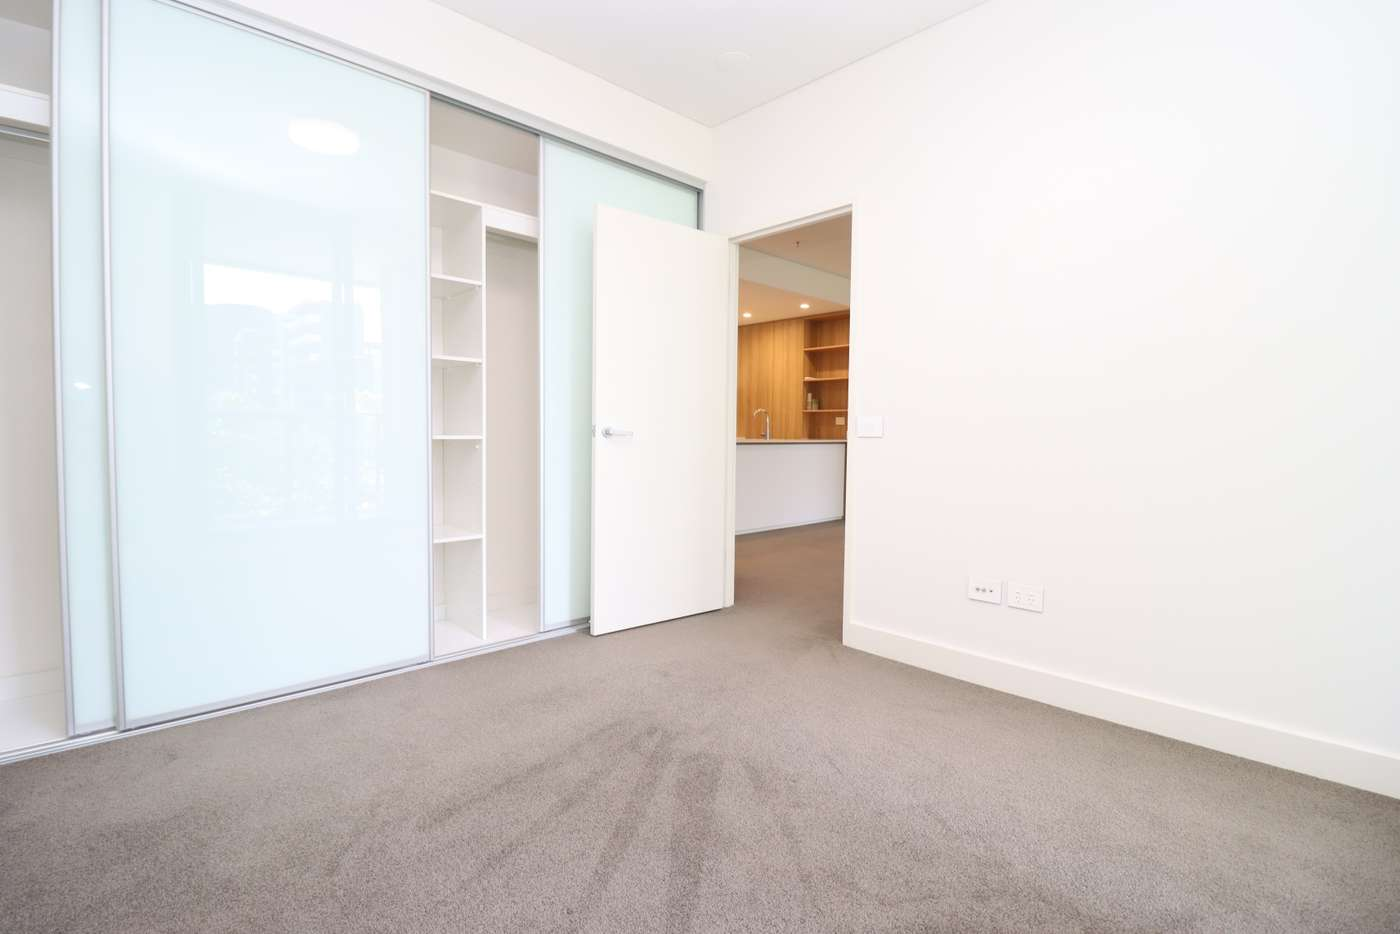 Sixth view of Homely apartment listing, C318/46 Savona Dr, Wentworth Point NSW 2127